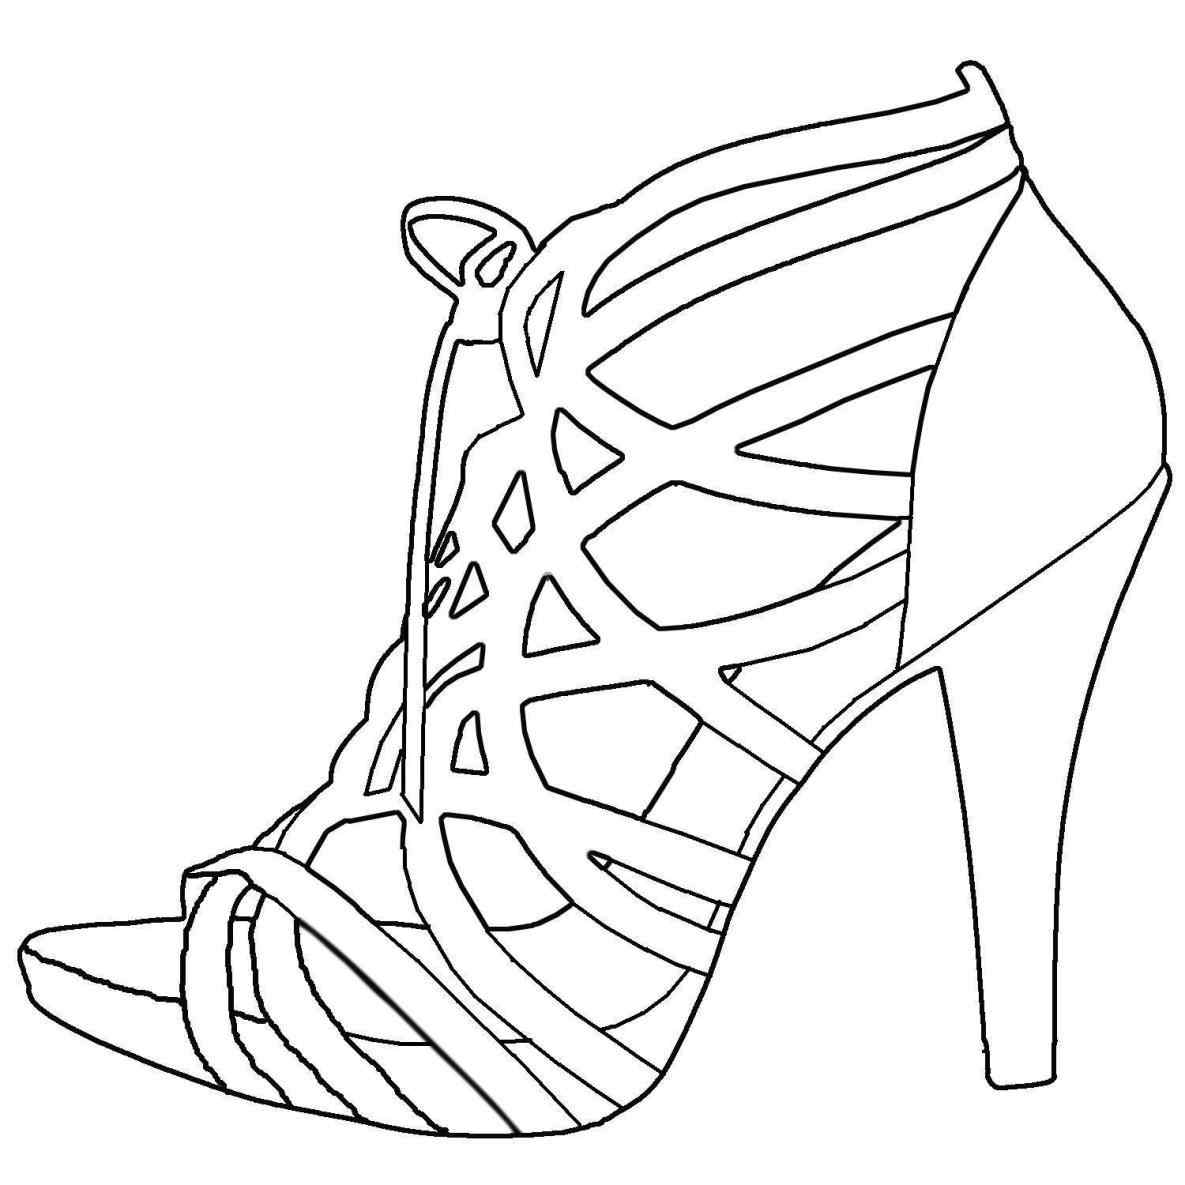 The best free Heel drawing images